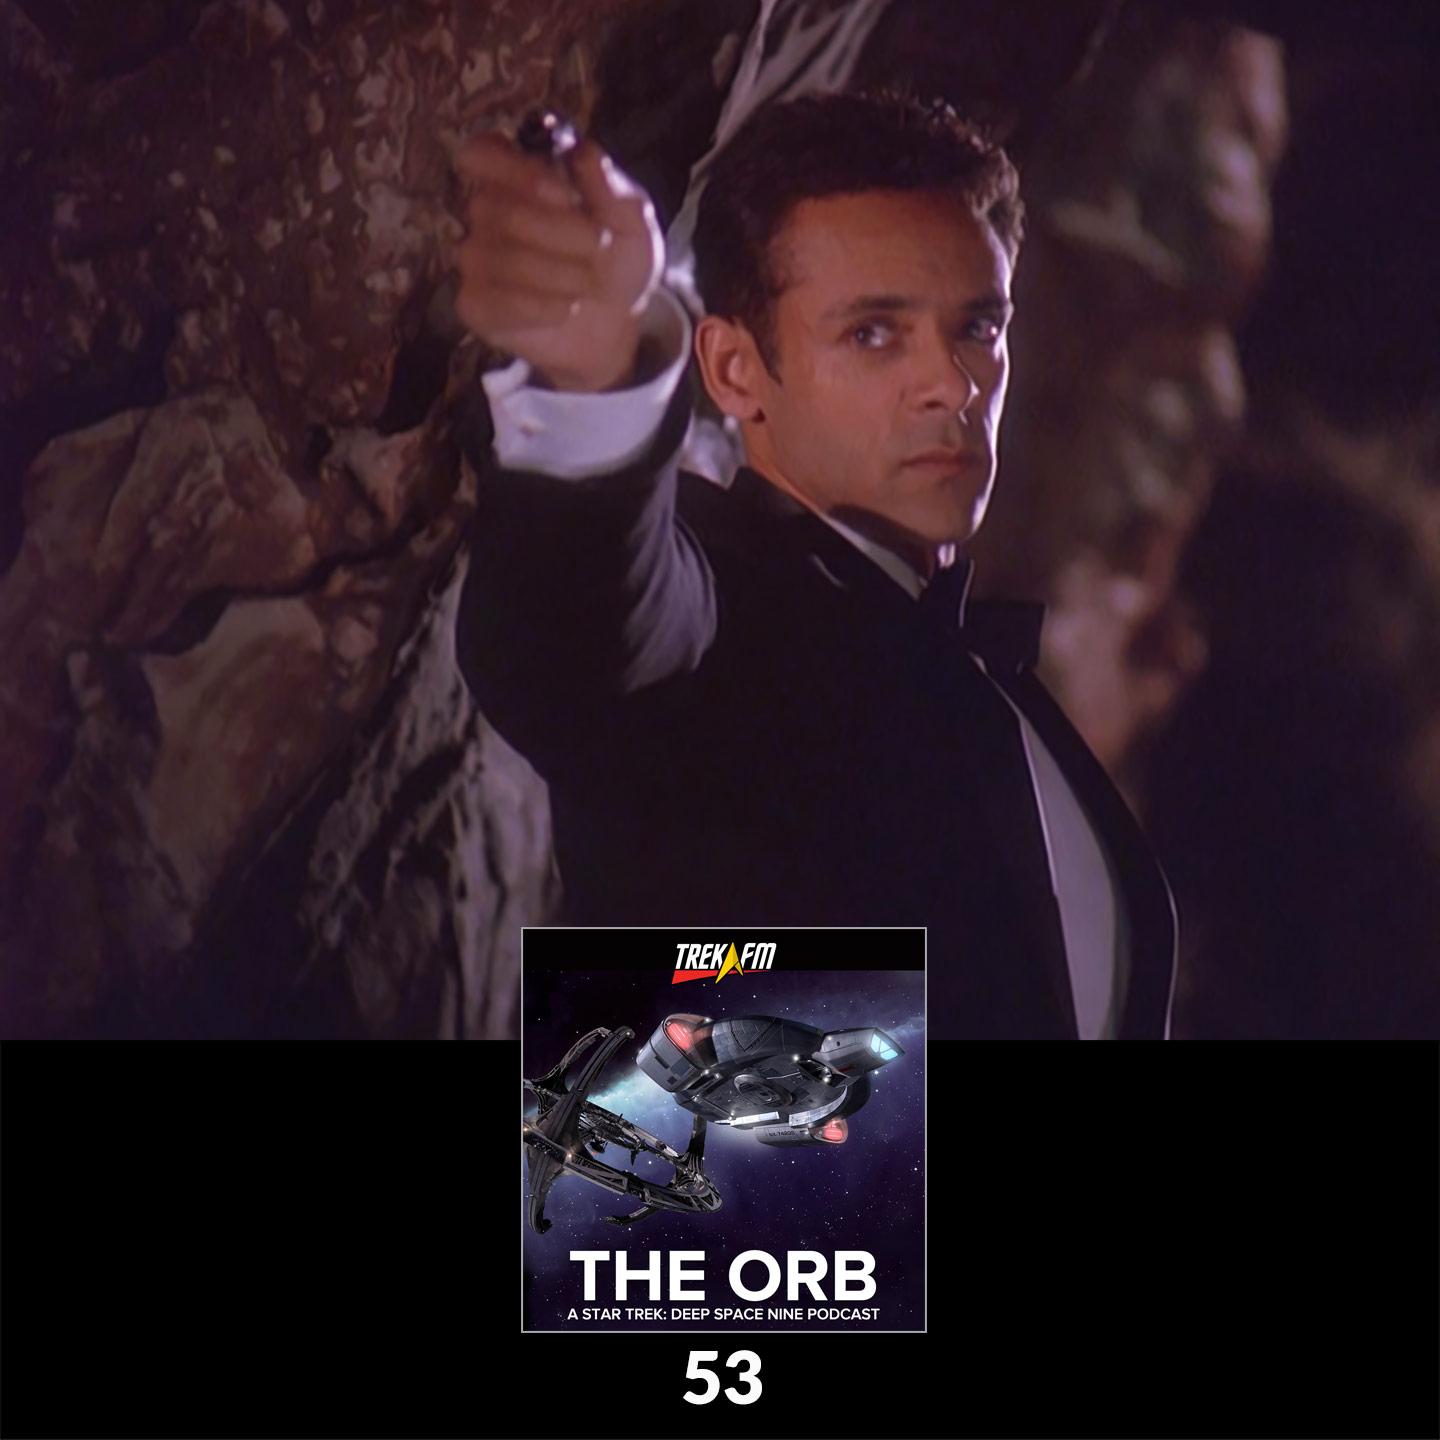 The Orb 53: Destroy the World to Win the Game